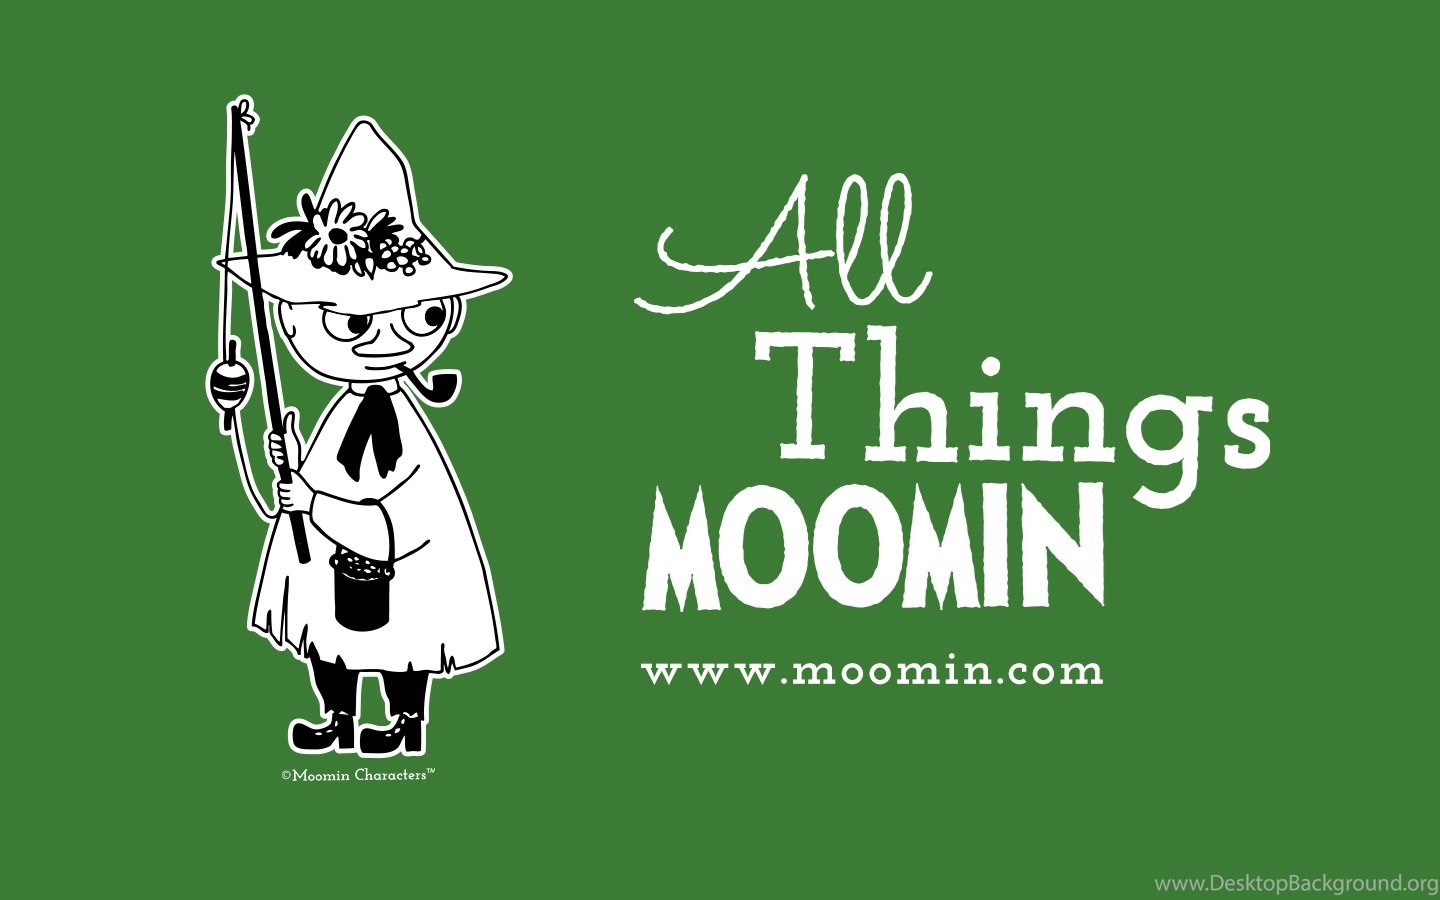 Our Moomin Wallpapers In June Features Snufkin Moomin